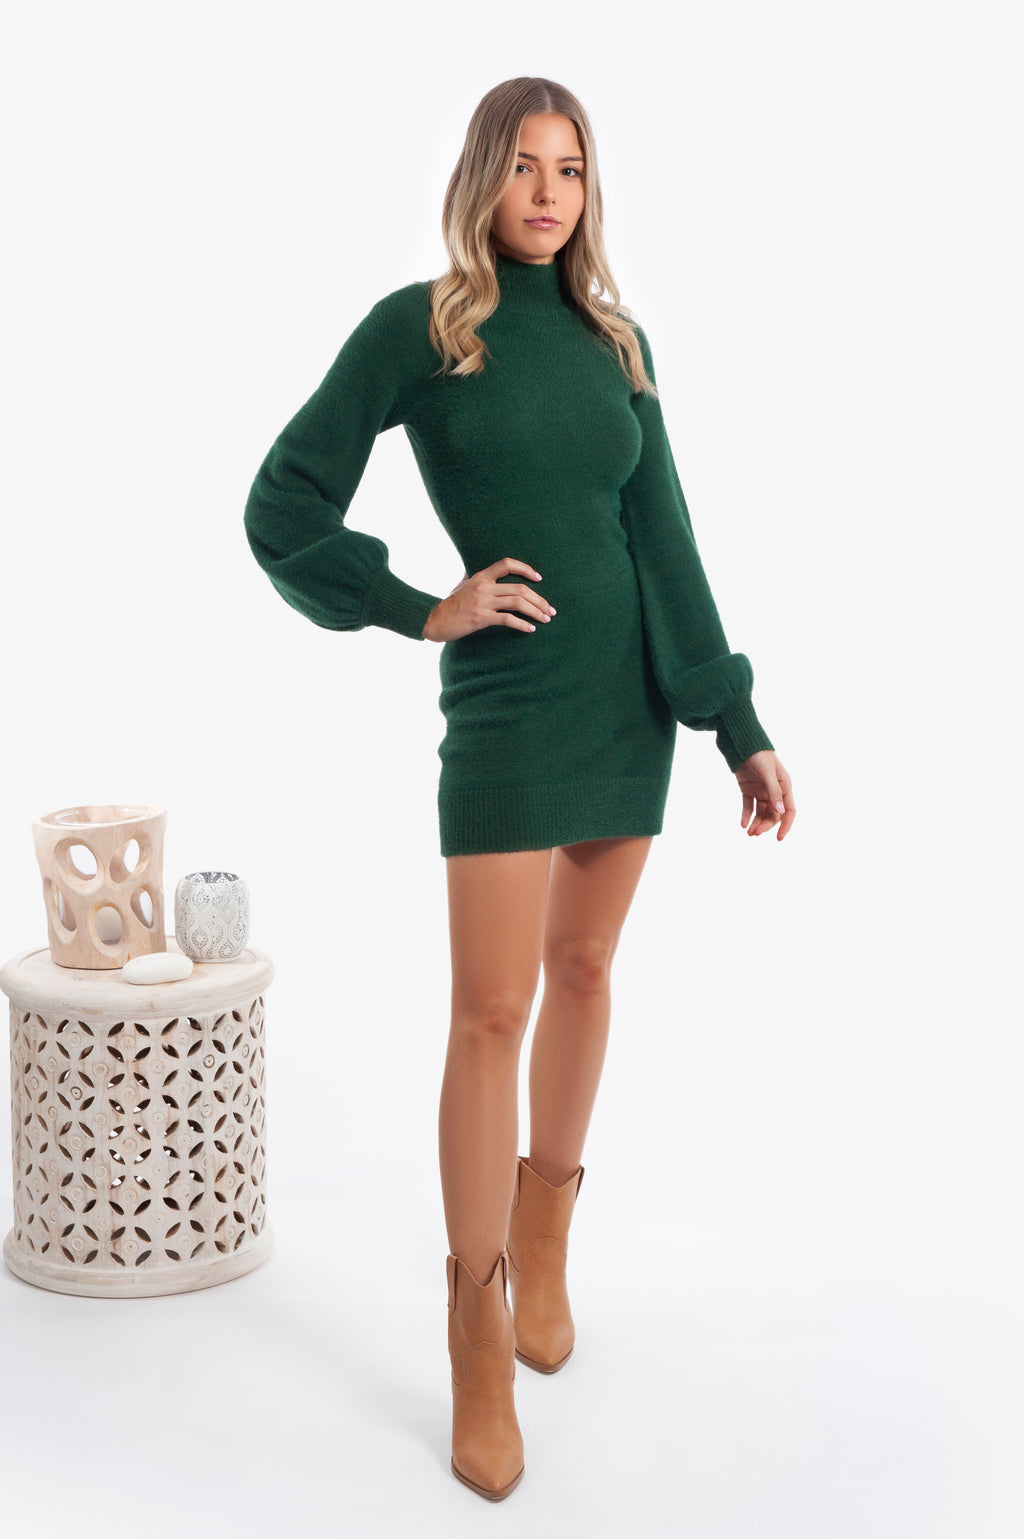 Everly Knit Dress - Islandlace